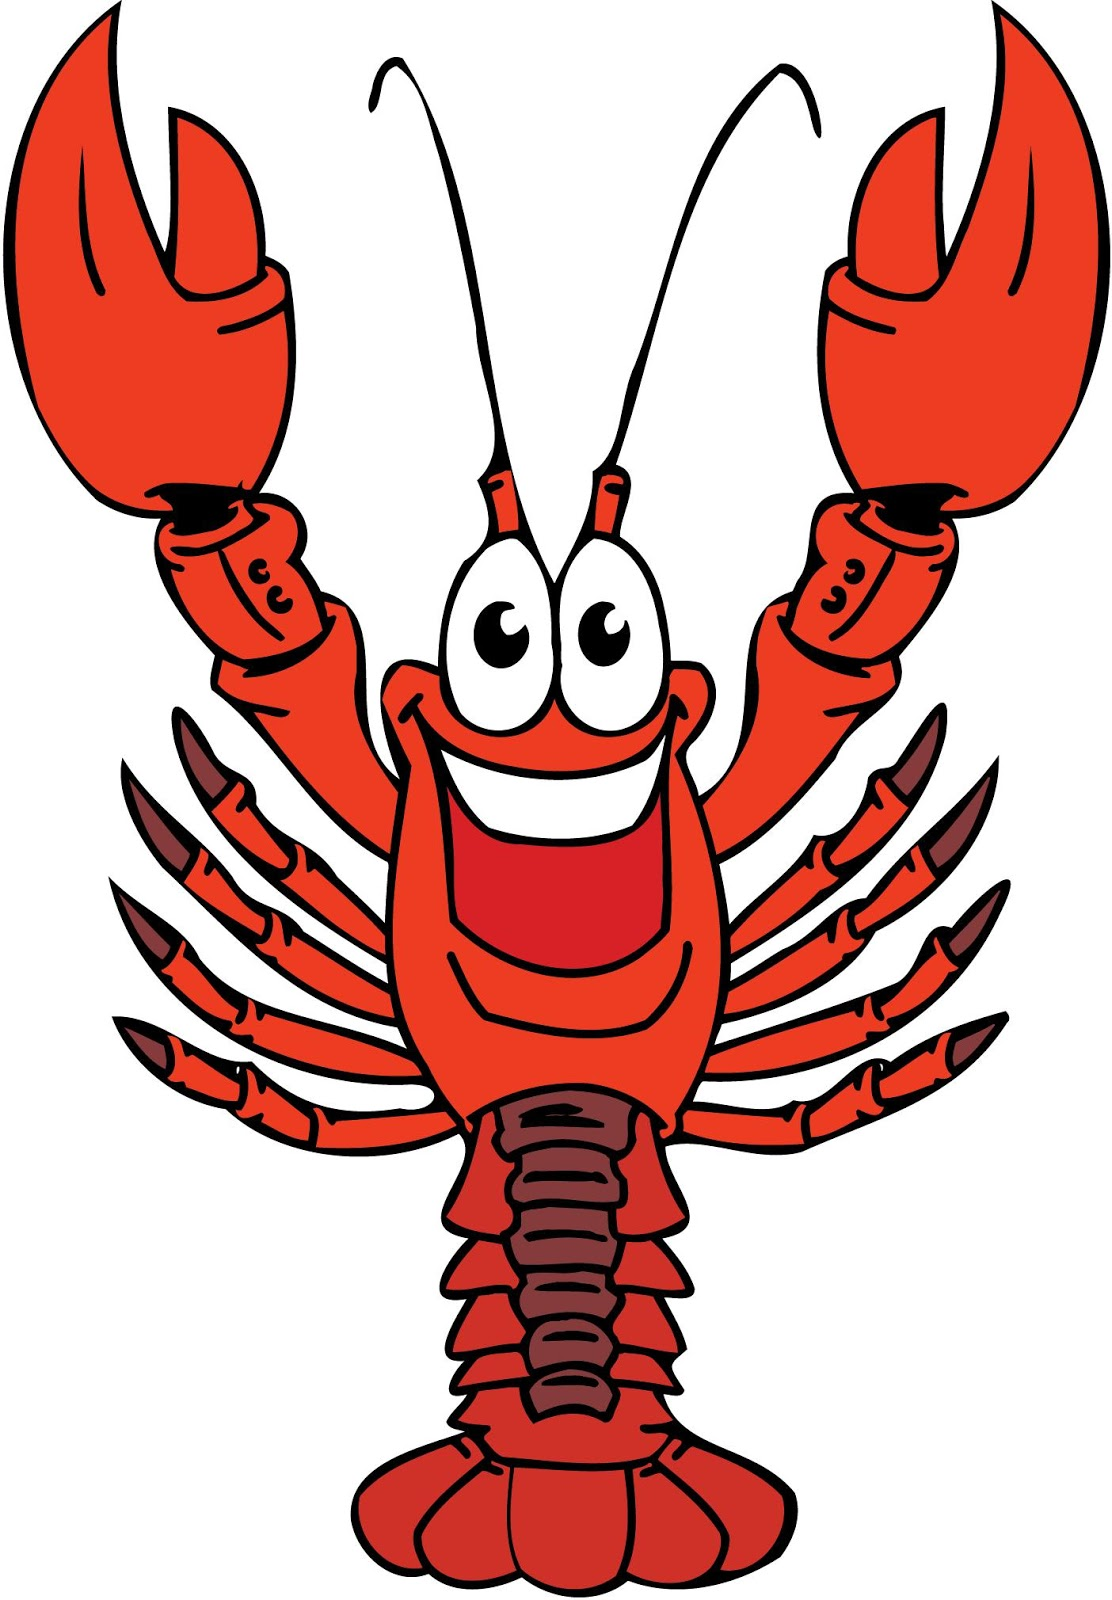 19 Pictures Of Crawfish Free Cliparts Th-19 Pictures Of Crawfish Free Cliparts That You Can Download To You-0